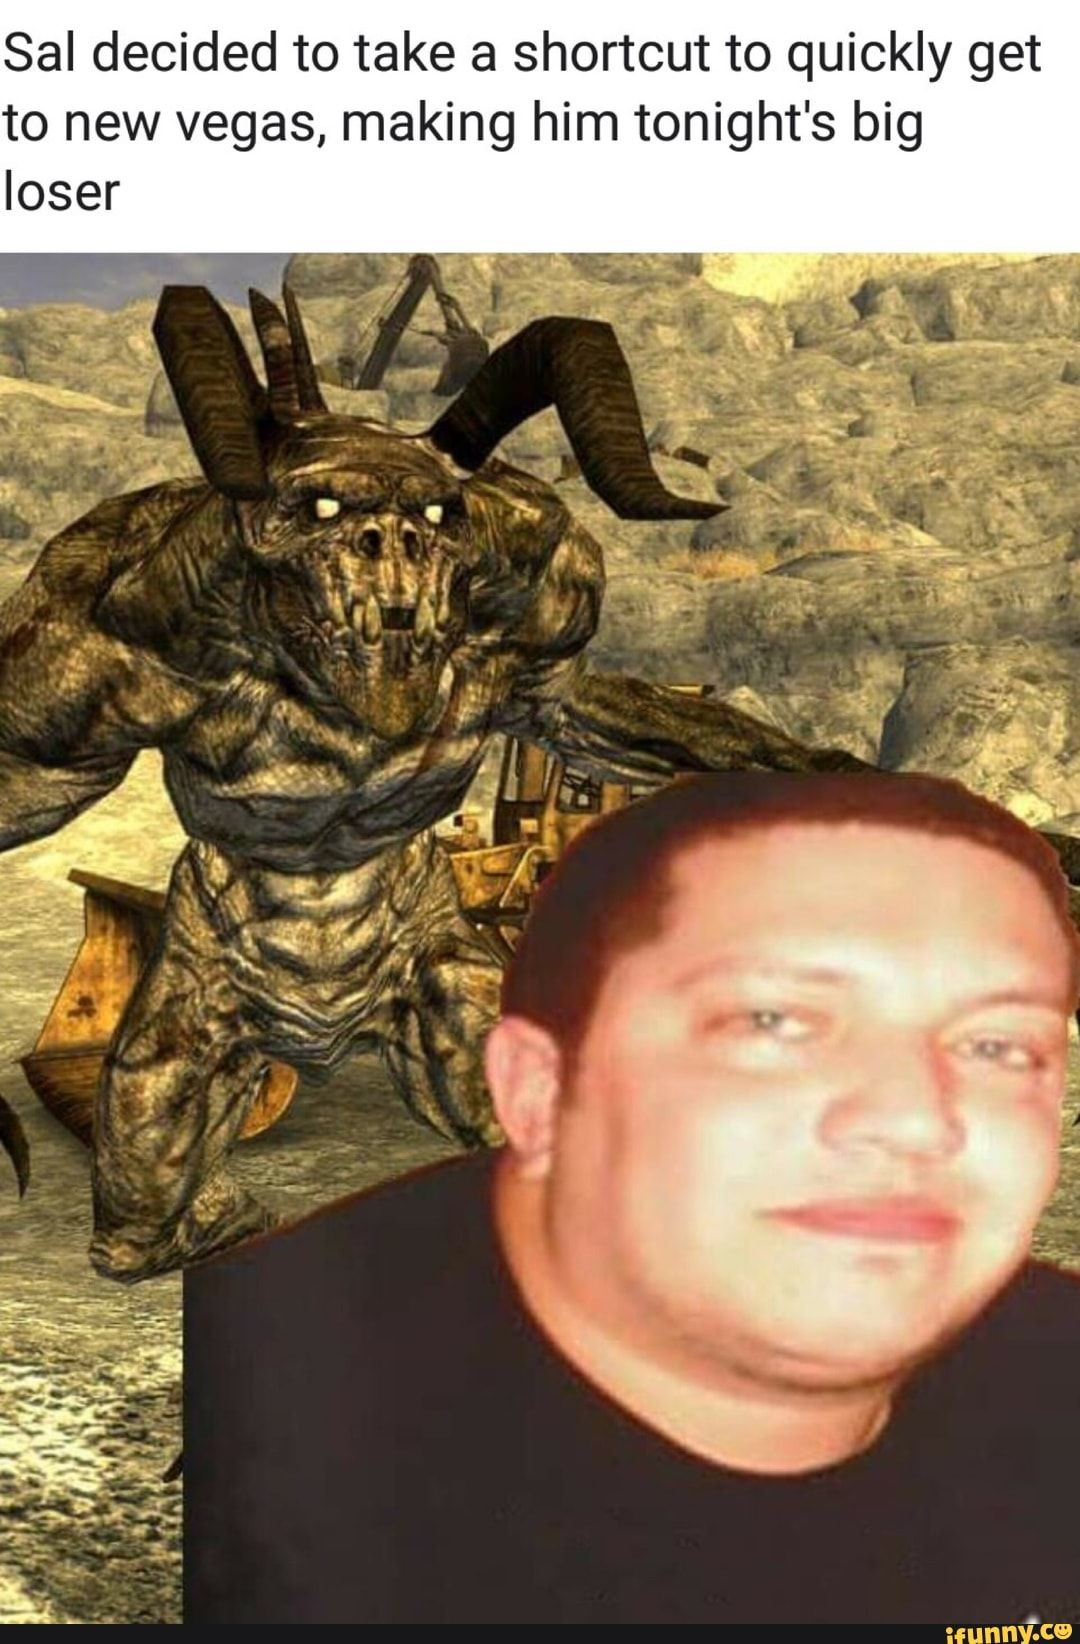 Sal decided to take a shortcut to quickly get to new vegas